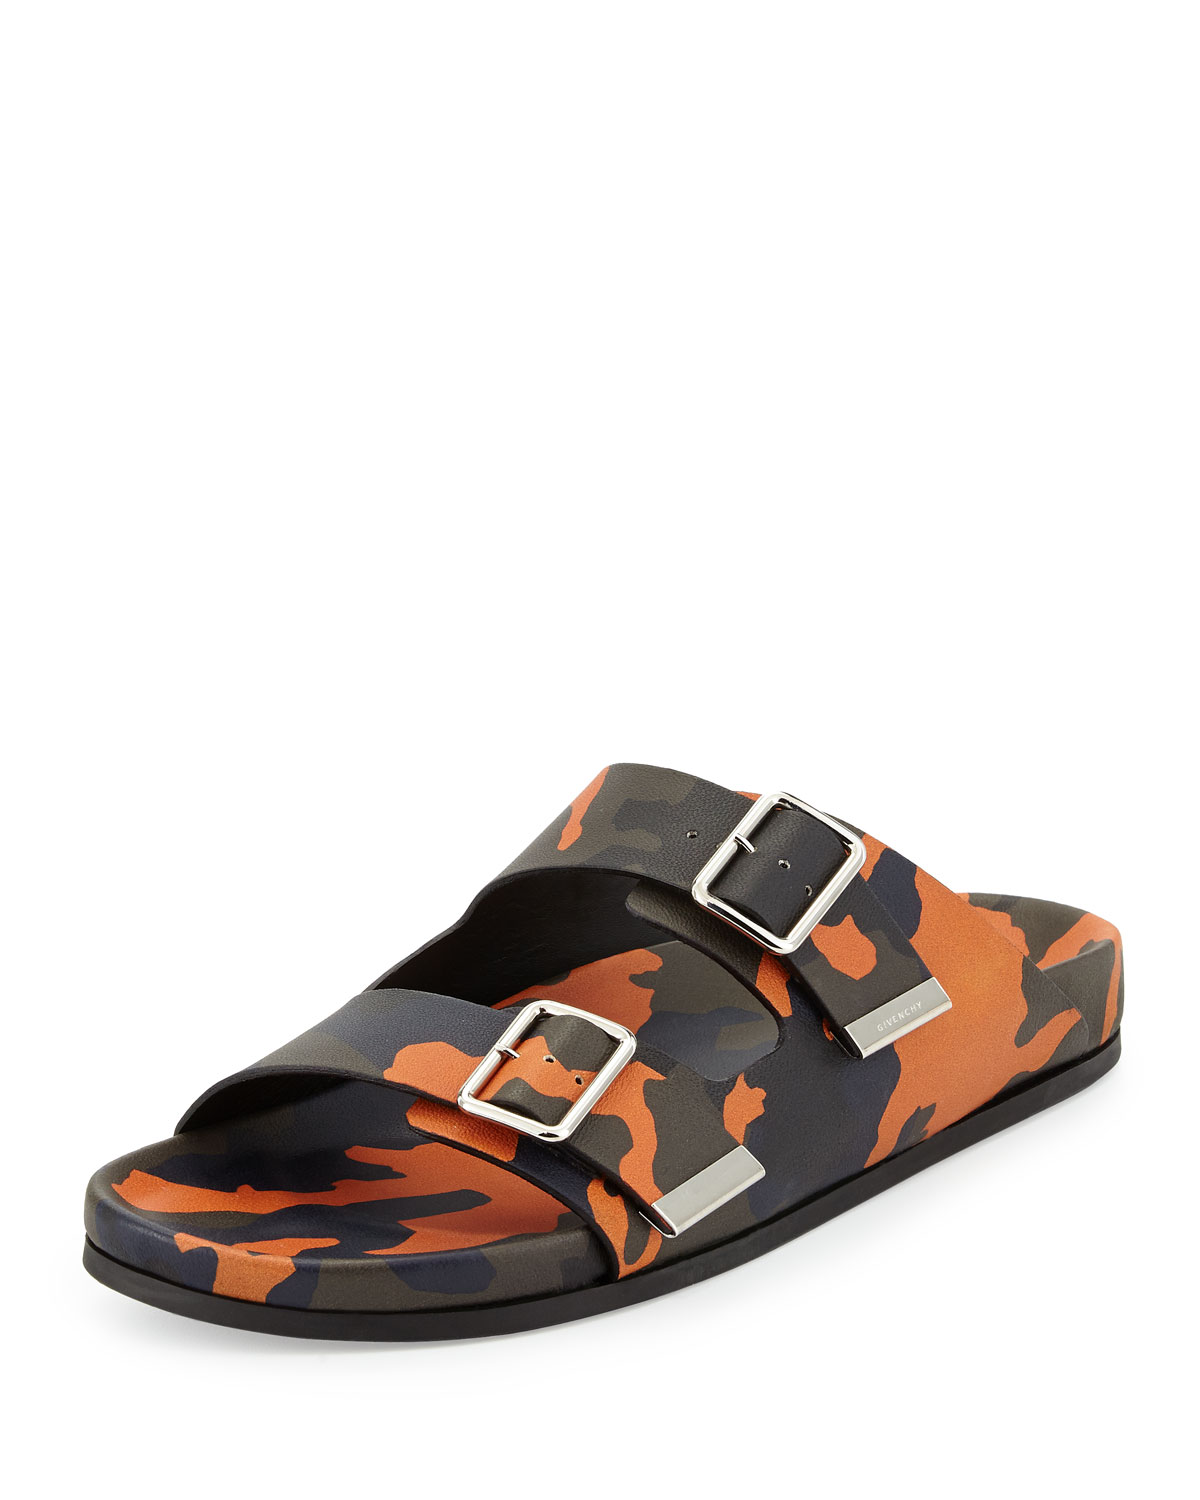 Givenchy Camo Double-Strap Footbed Sandal, Orange